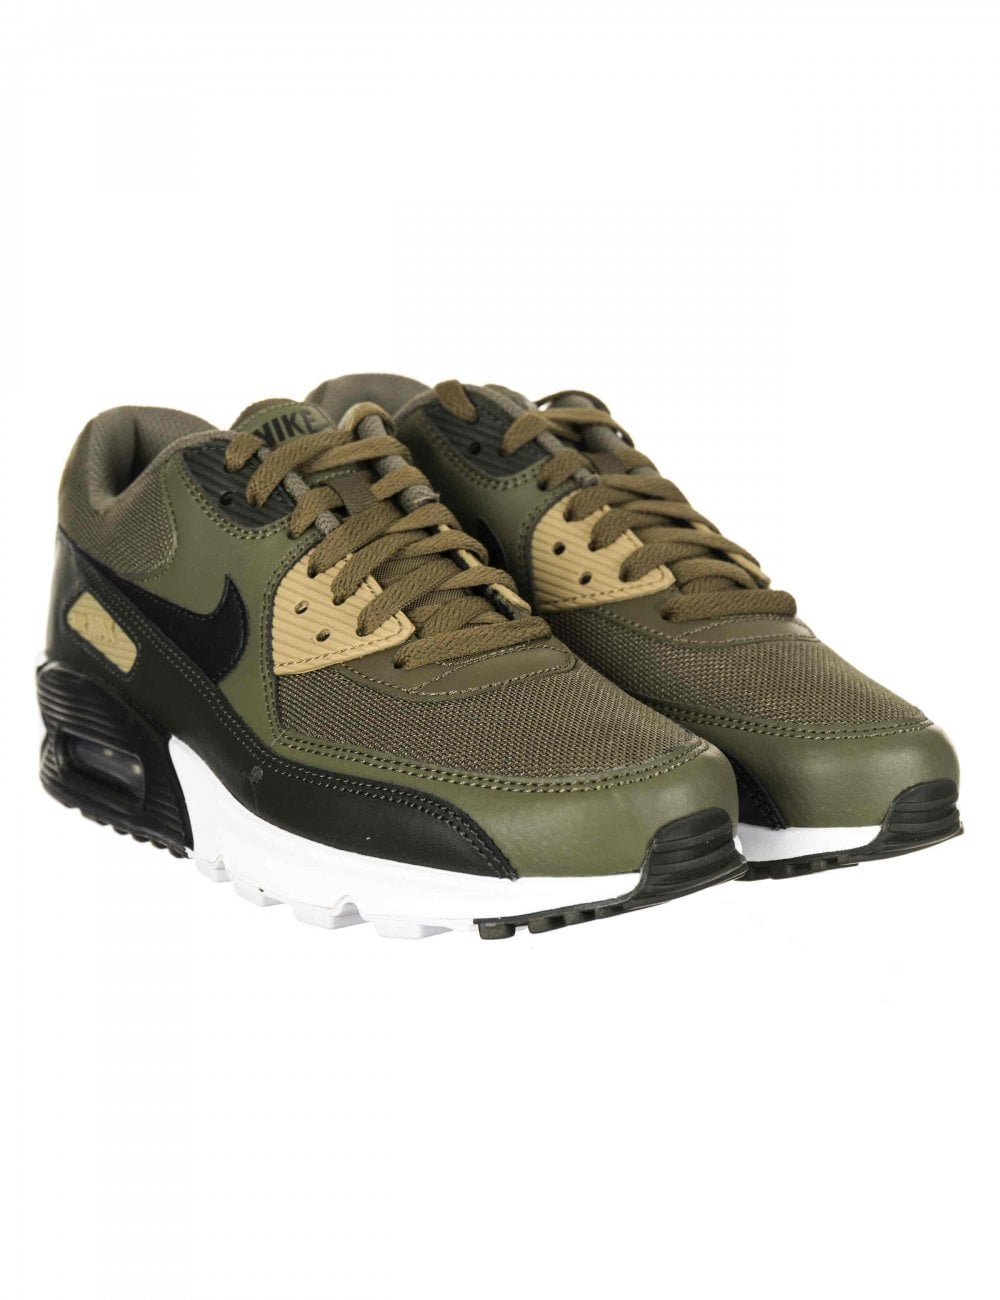 cheap for discount 0a554 b1e0a Air Max 90 Essential Trainers - Medium OliveBlack